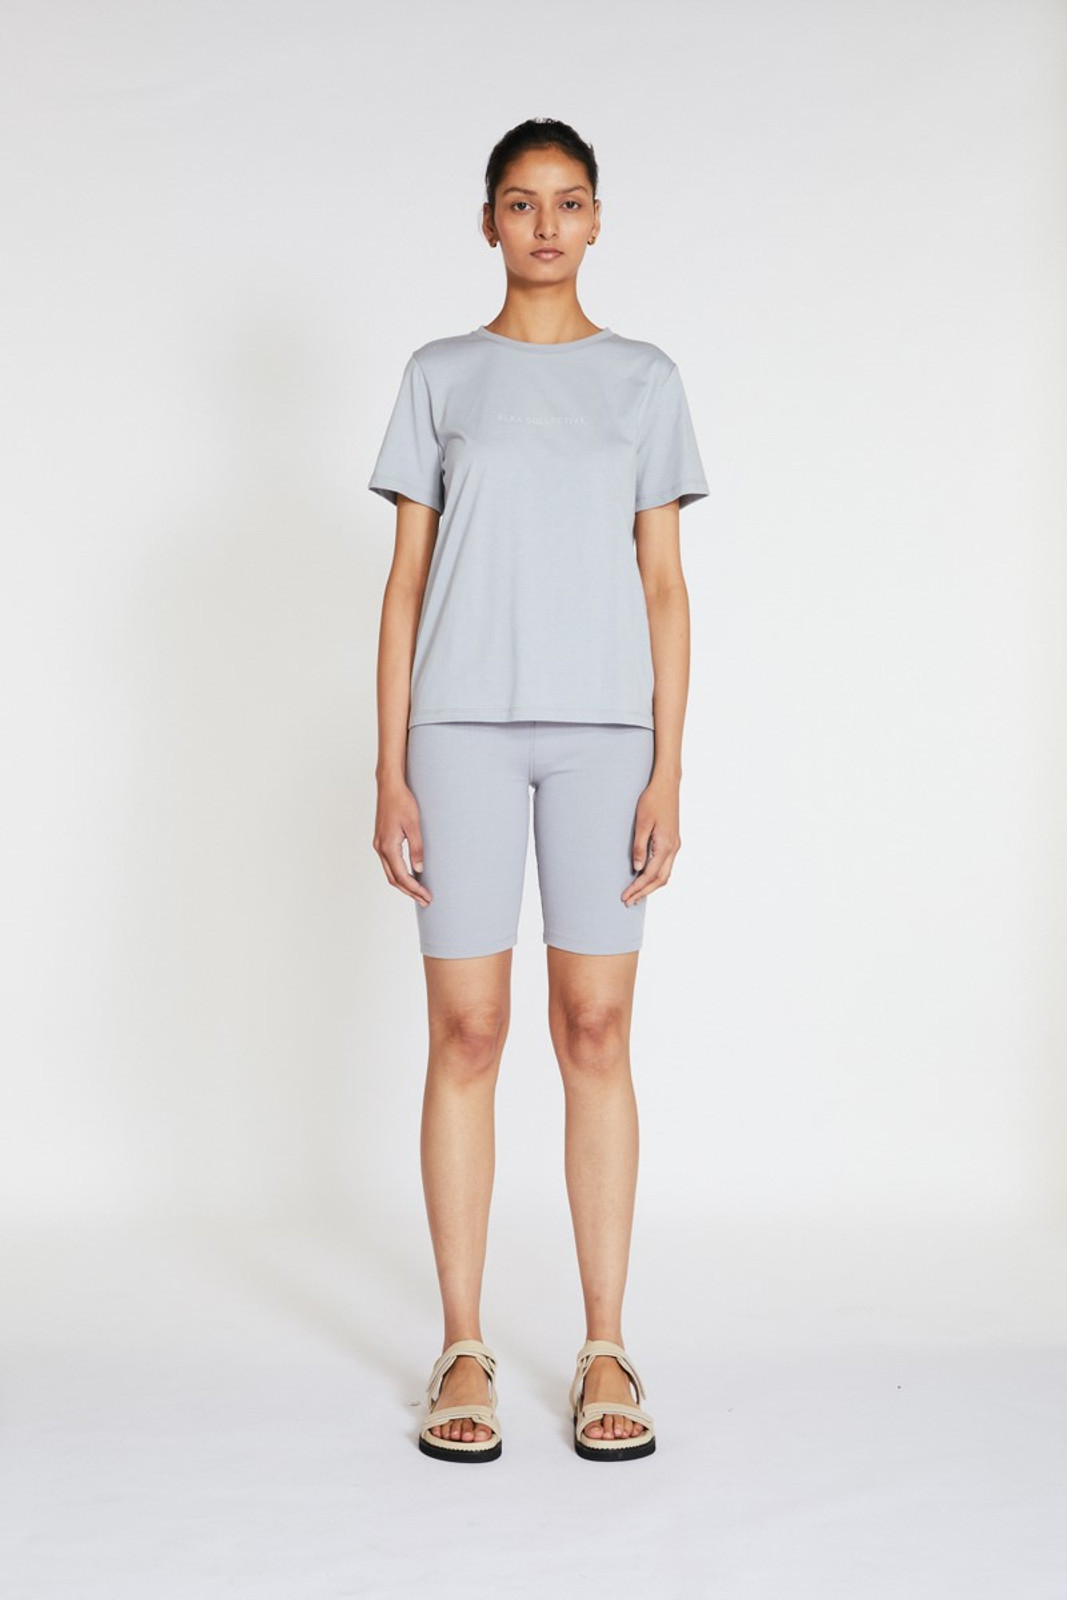 Elka Collective Trademark Tee Blue  1